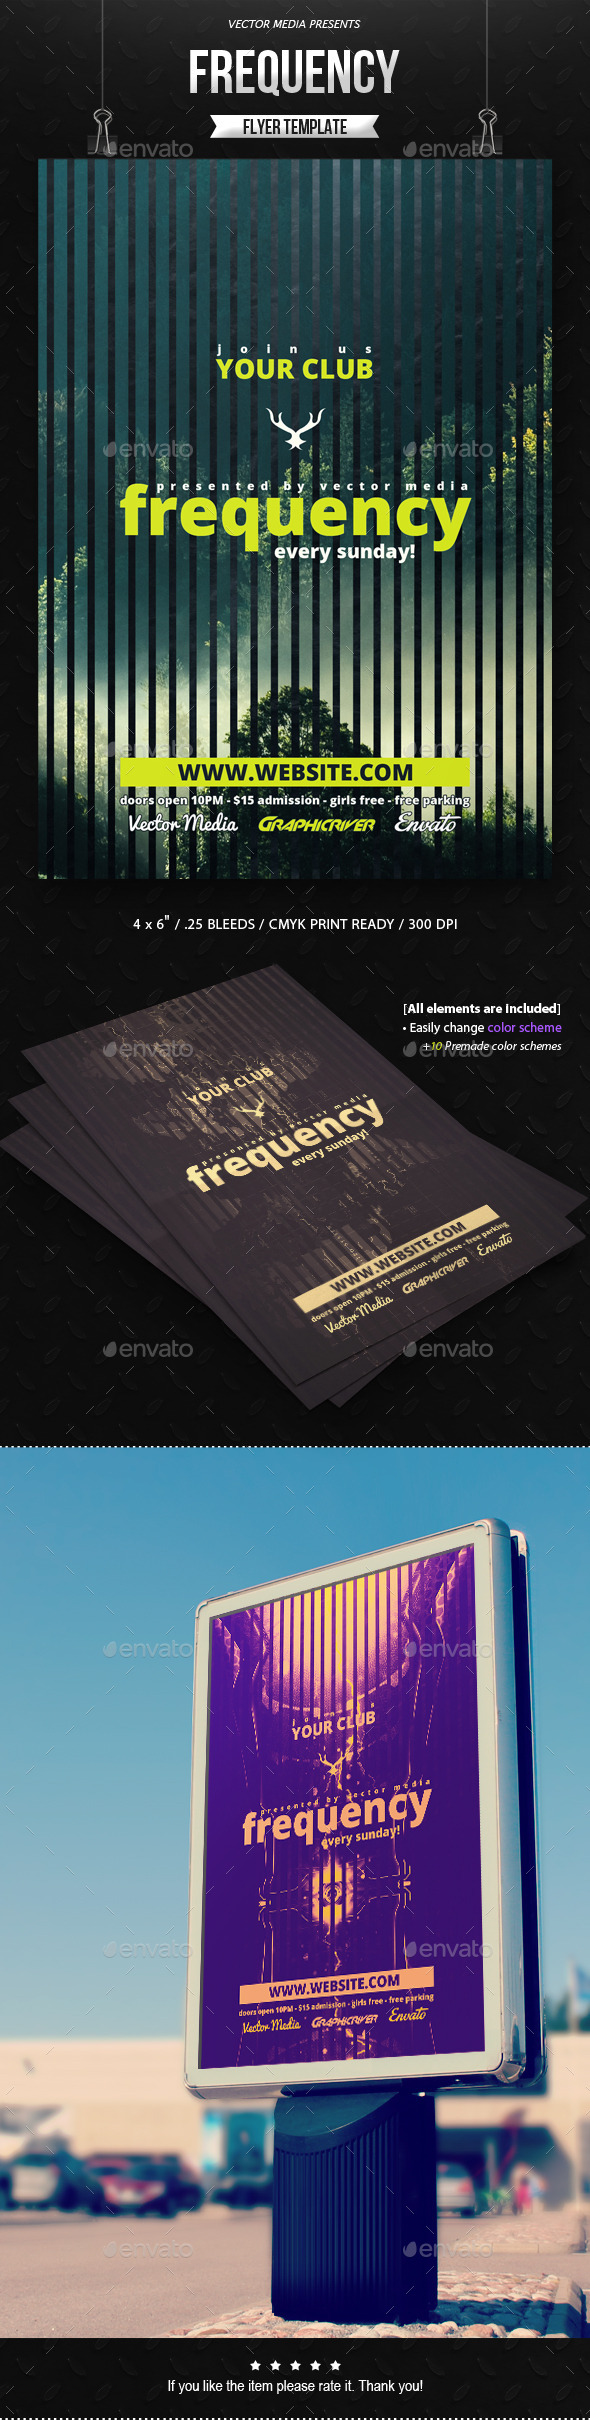 Frequency - Flyer - Clubs & Parties Events